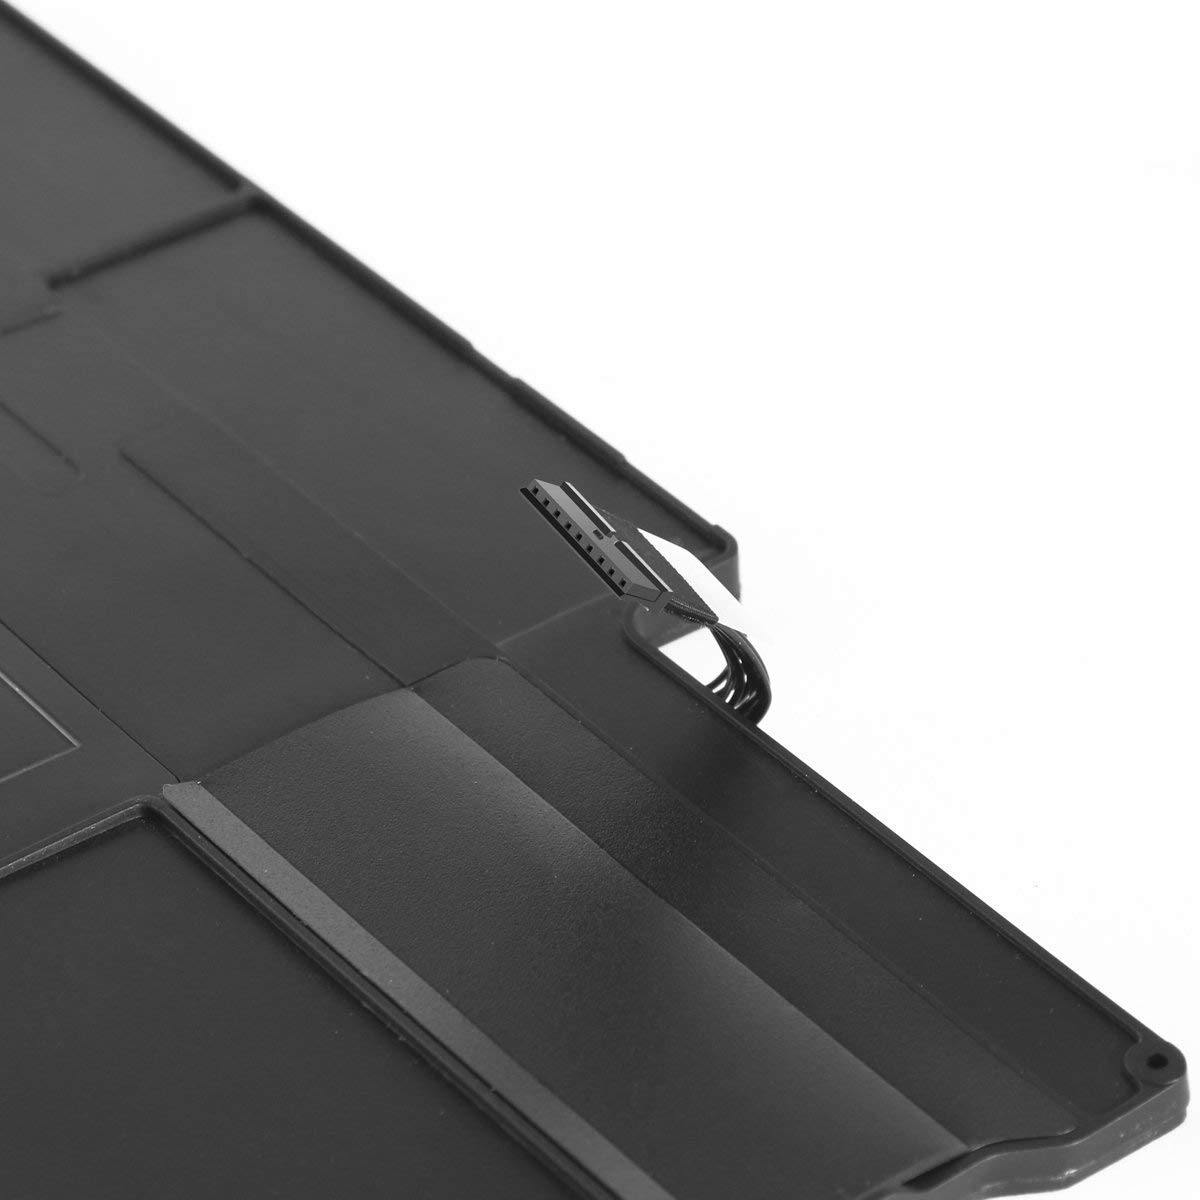 CSEXCEL New Laptop Battery for MacBook Air 13'' A1405 A1377 A1496 A1369 (Late 2010 Mid 2011) A1466 (Mid 2012 Mid 2013 Early 2014) [Li-Polymer 55Wh] by CSEXCEL (Image #4)